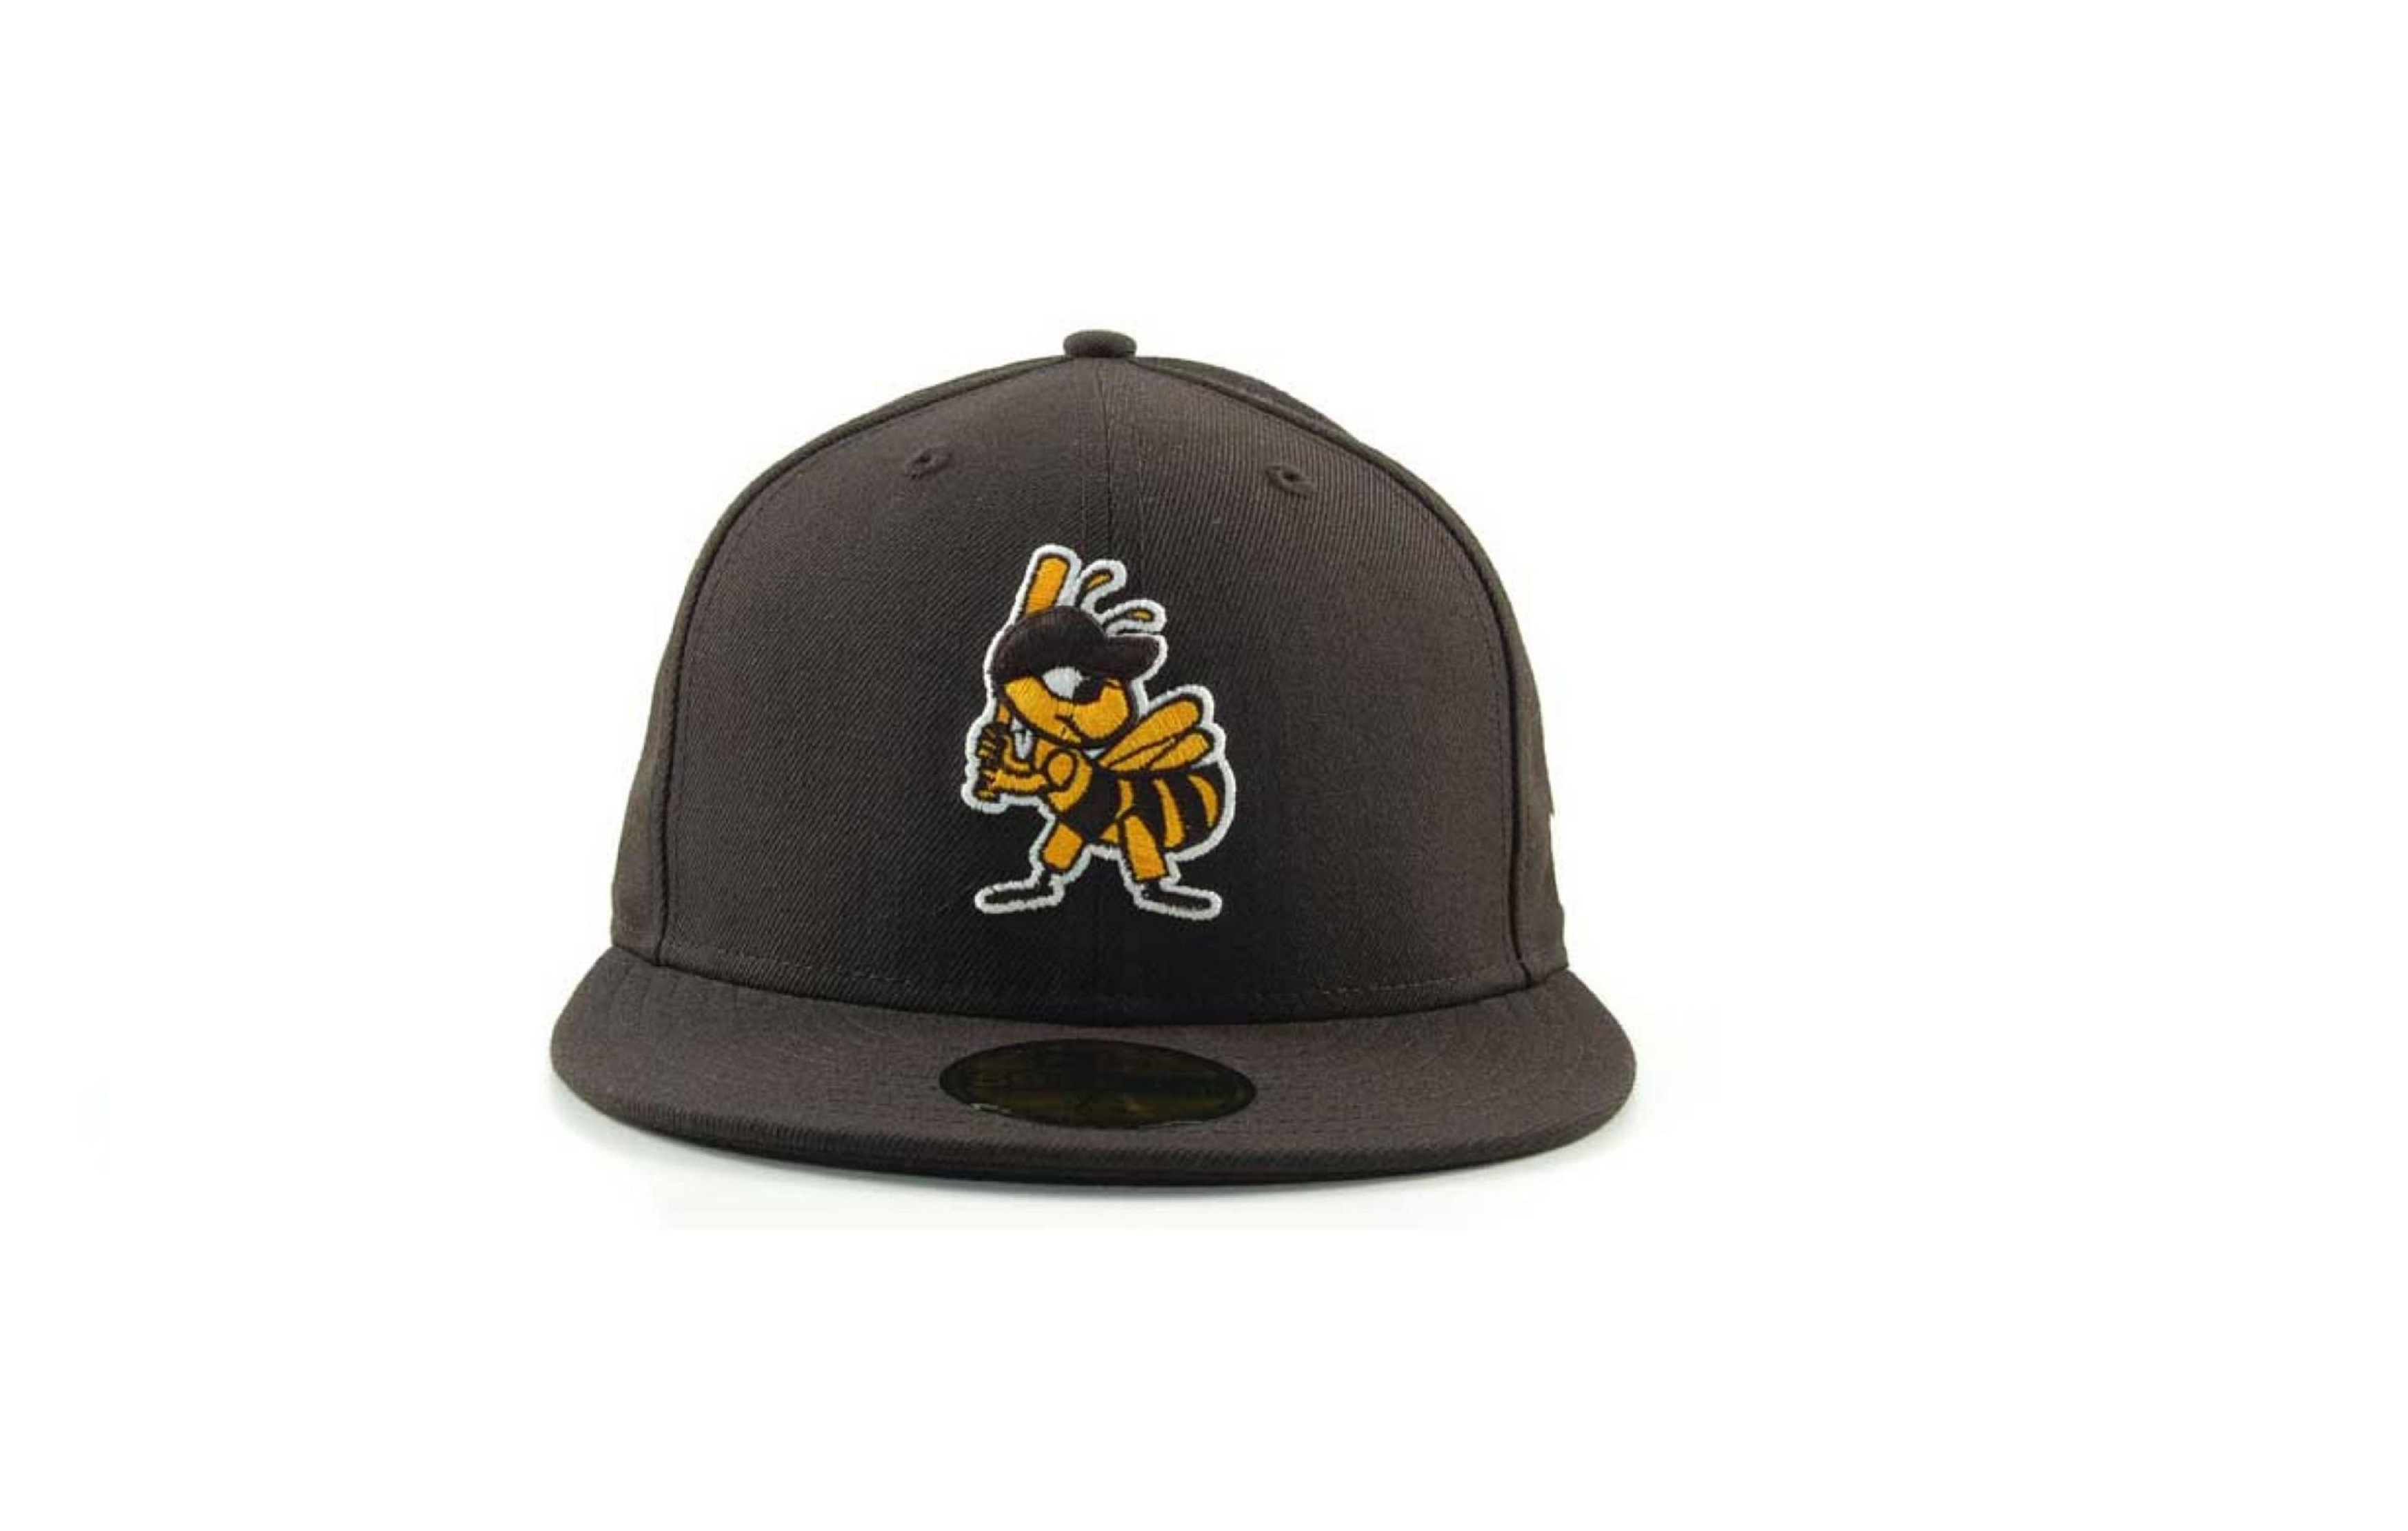 Salt Lake Bees High Definition Wallpapers